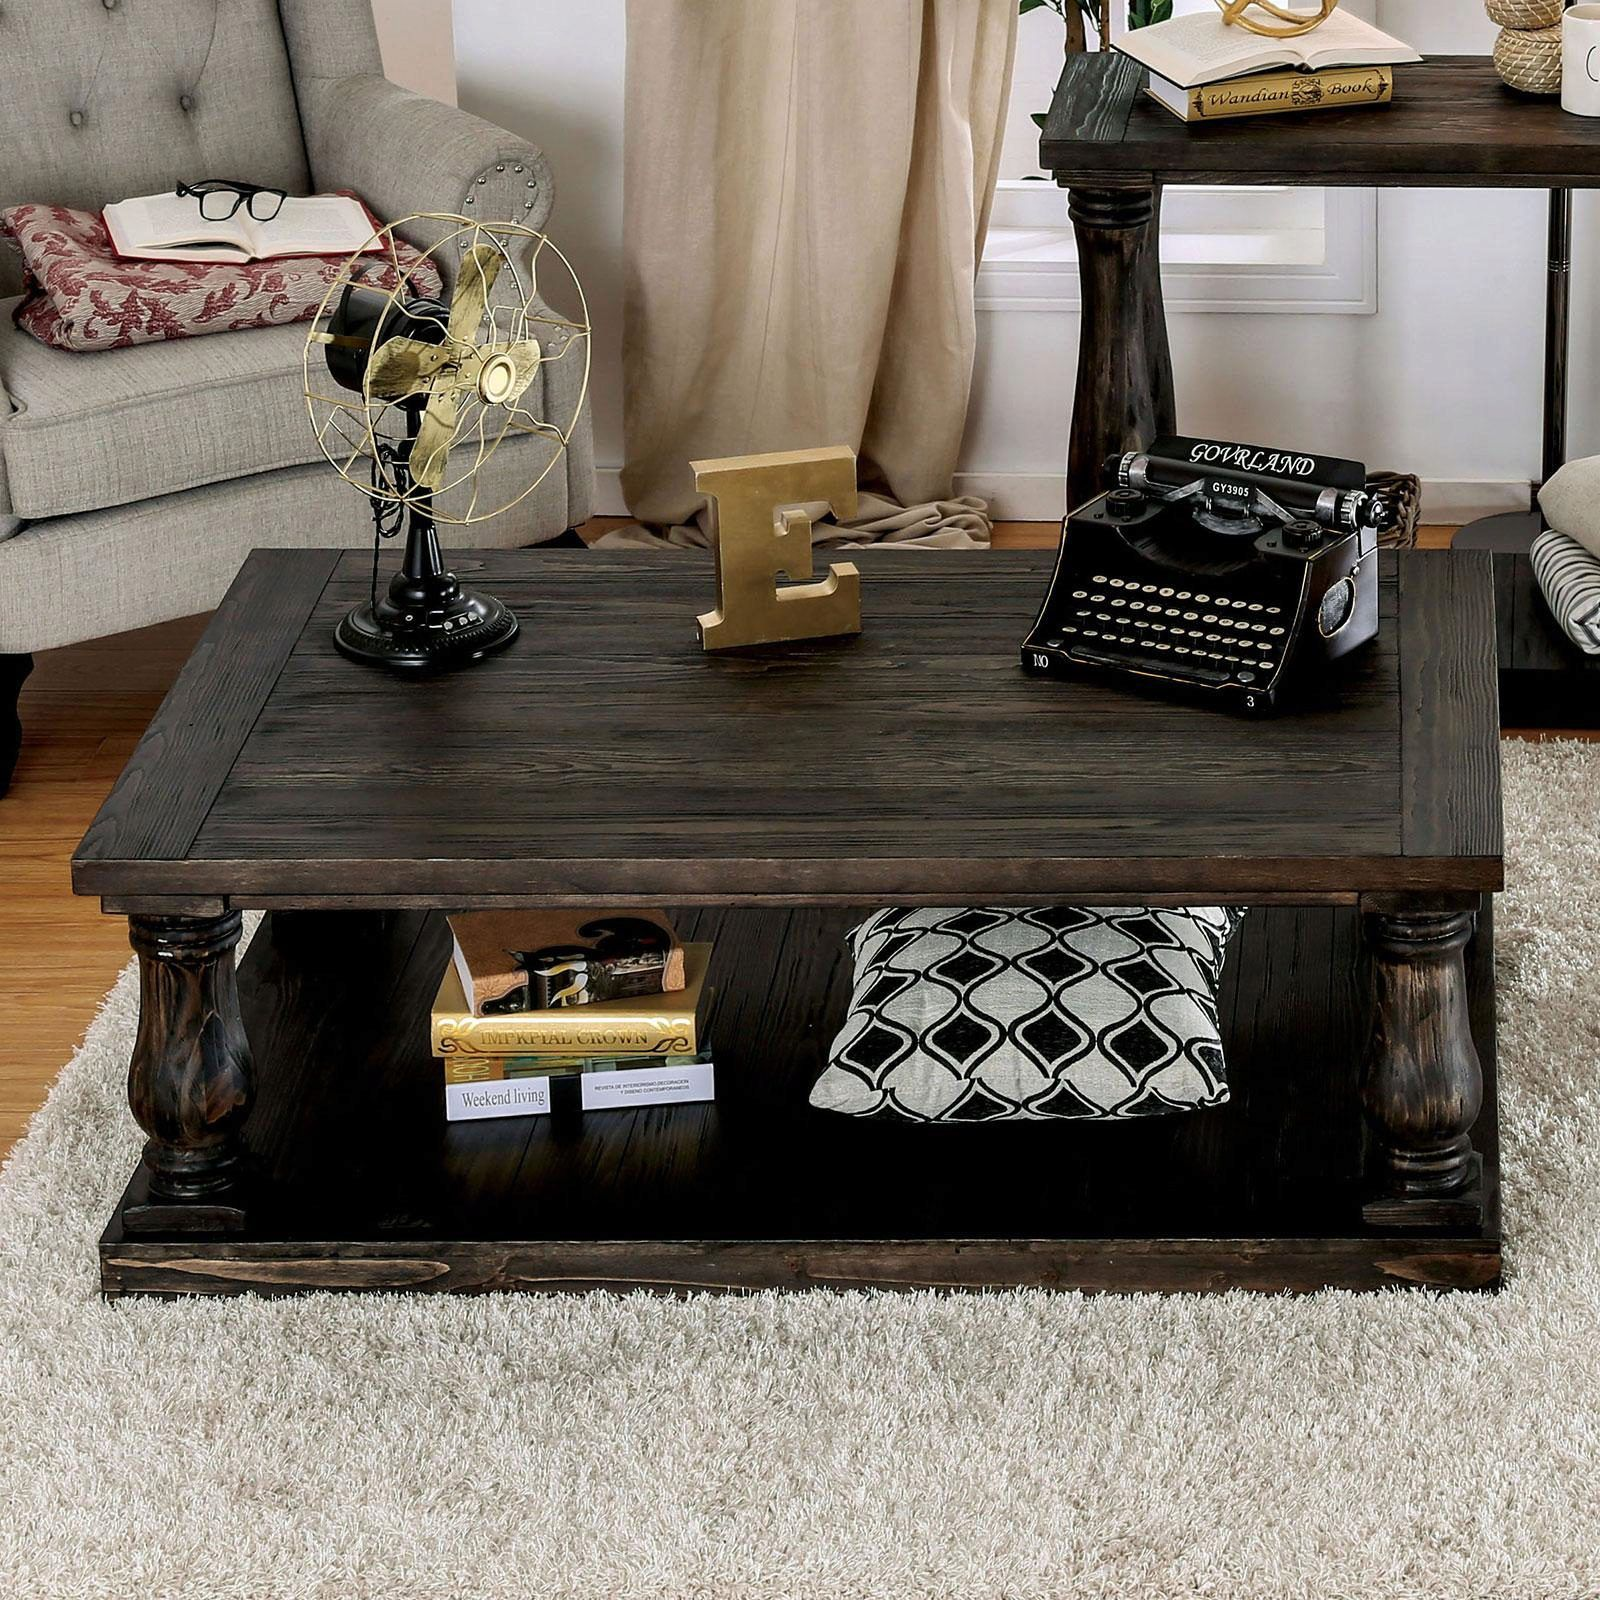 Transitional Coffee Table W Wood Top In Walnut Keira By Furniture Of America Cm4455c Table Coffee Table Wood Coffee Table 3 Piece Coffee Table Set [ 1600 x 1600 Pixel ]